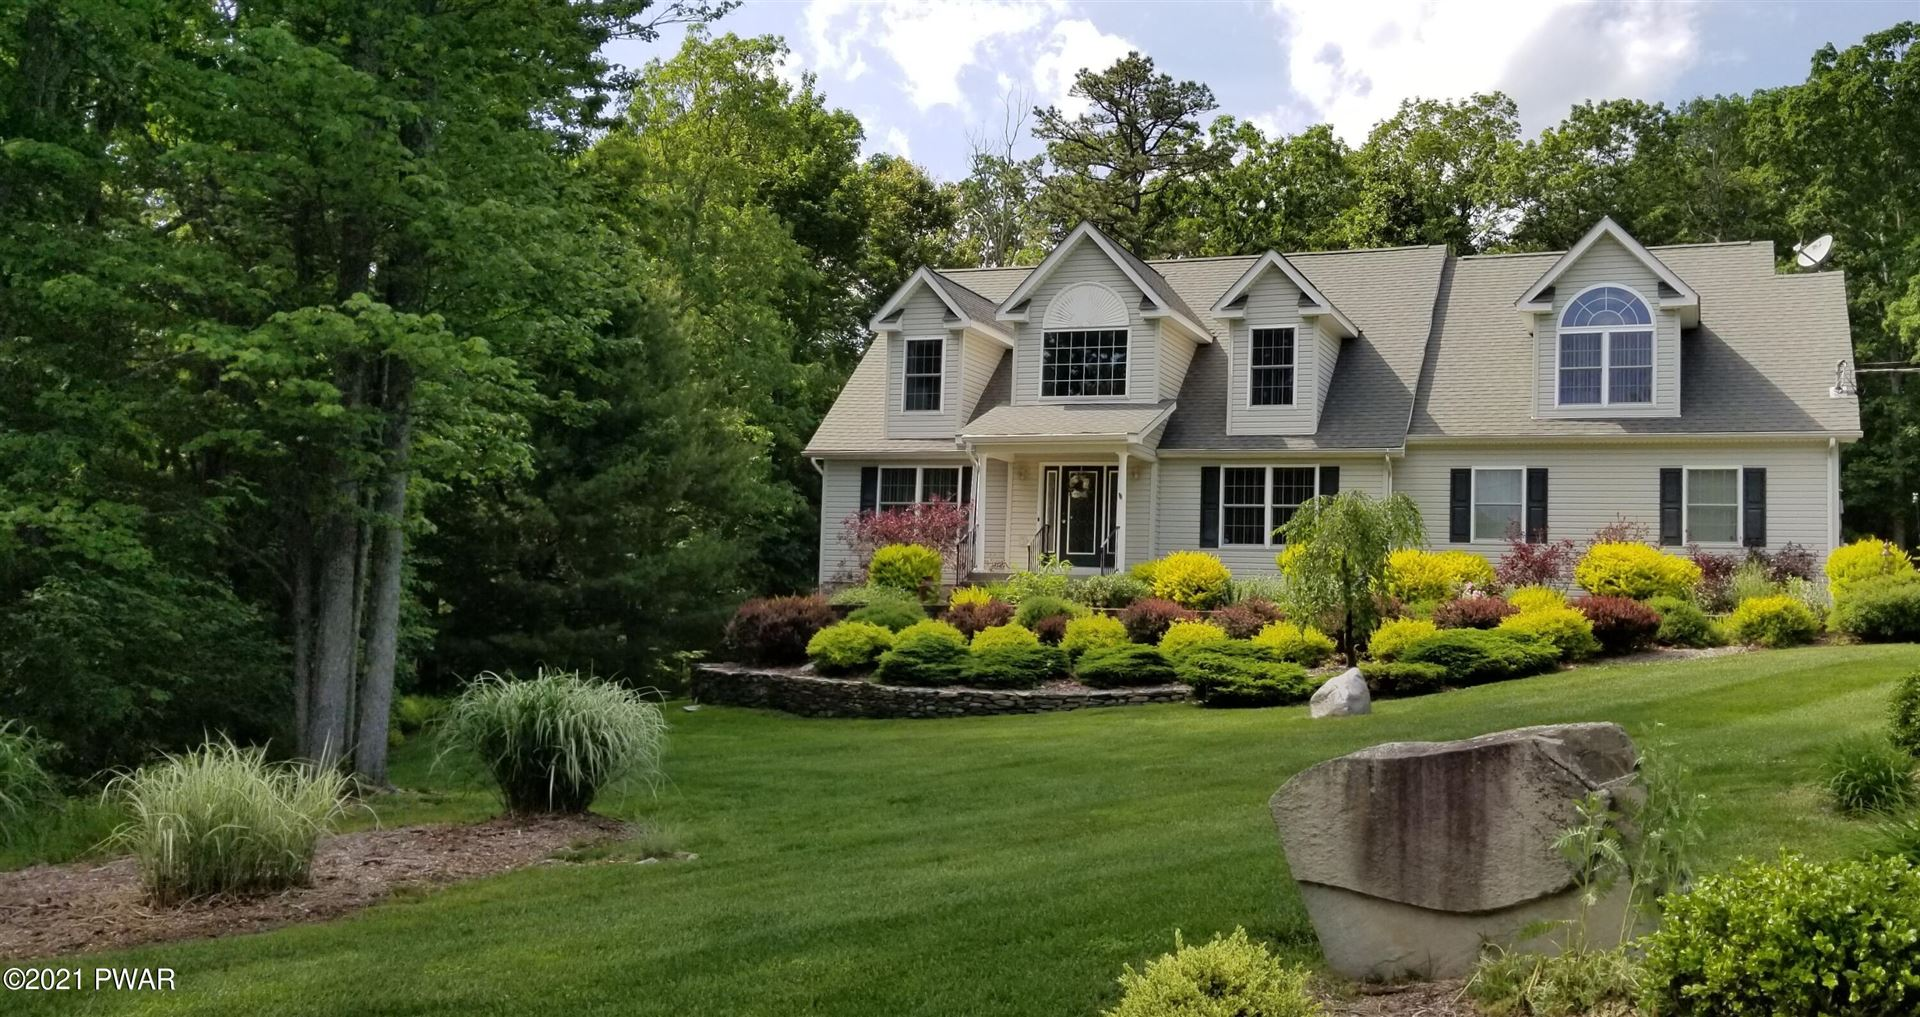 Photo of 124 Congress Rd, Milford, PA 18337 (MLS # 21-2127)